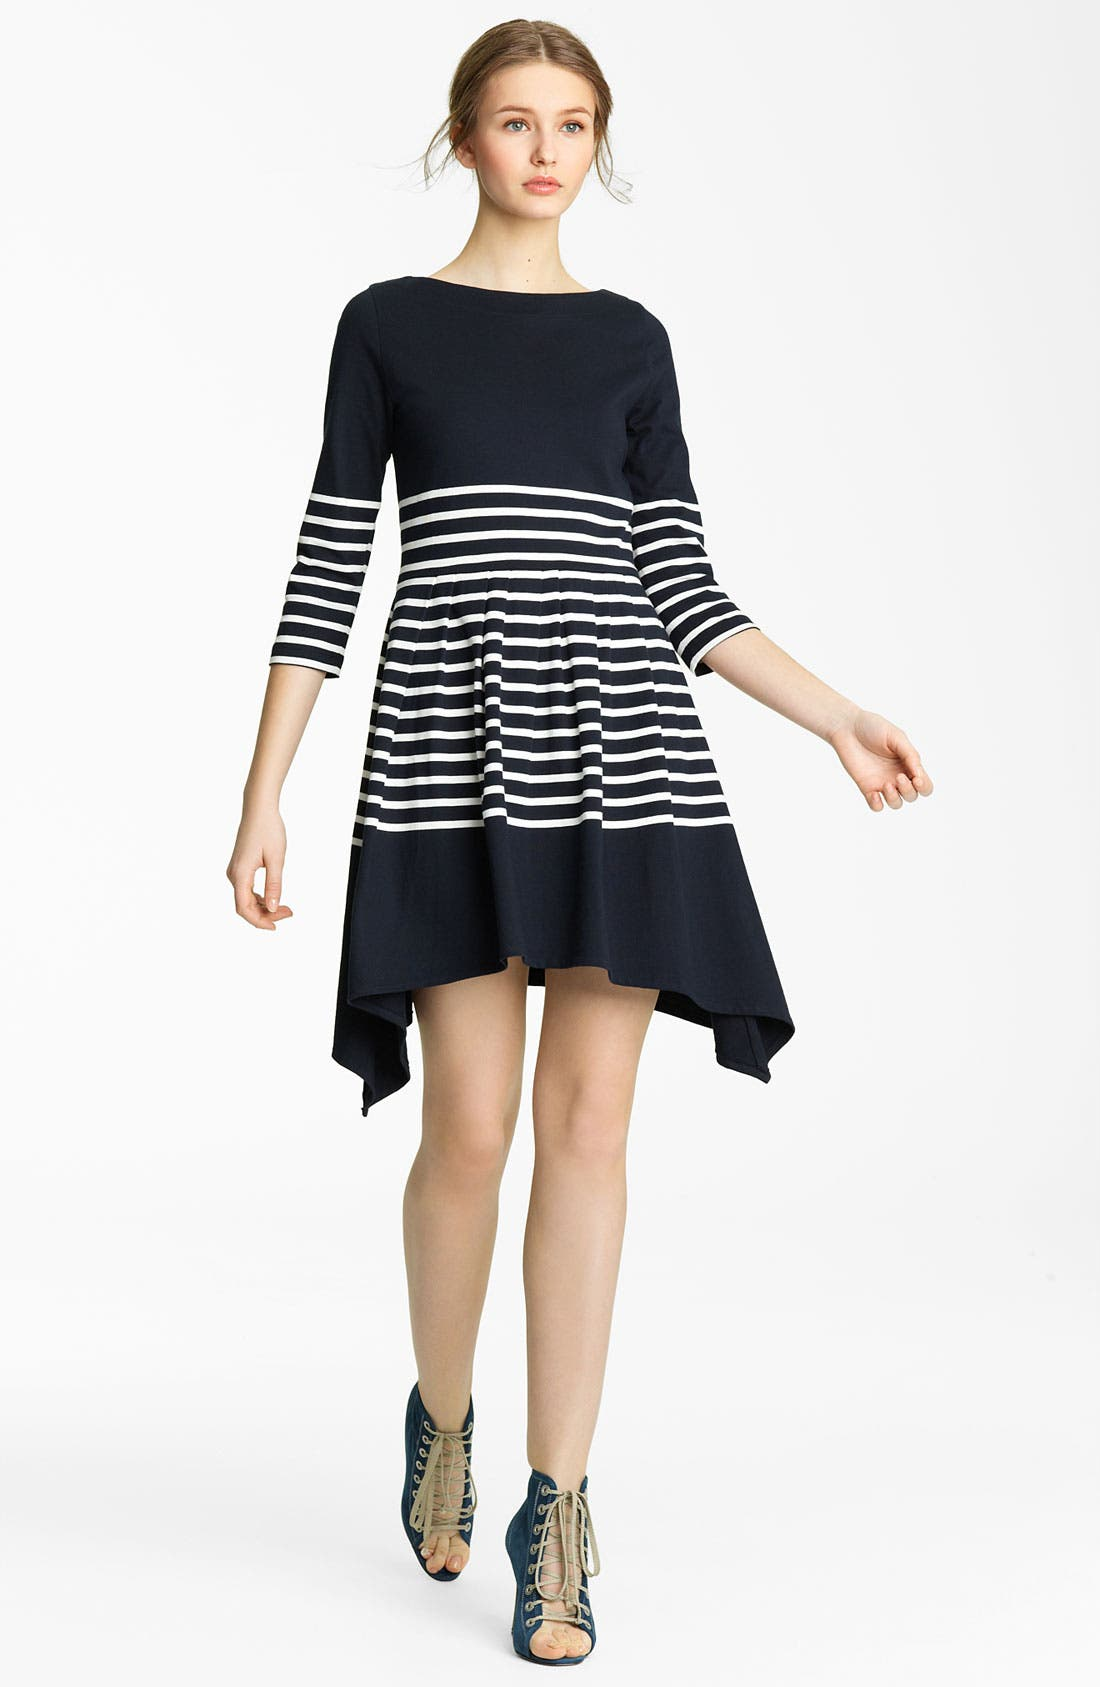 Alternate Image 1 Selected - Band of Outsiders Stripe Jersey Dress